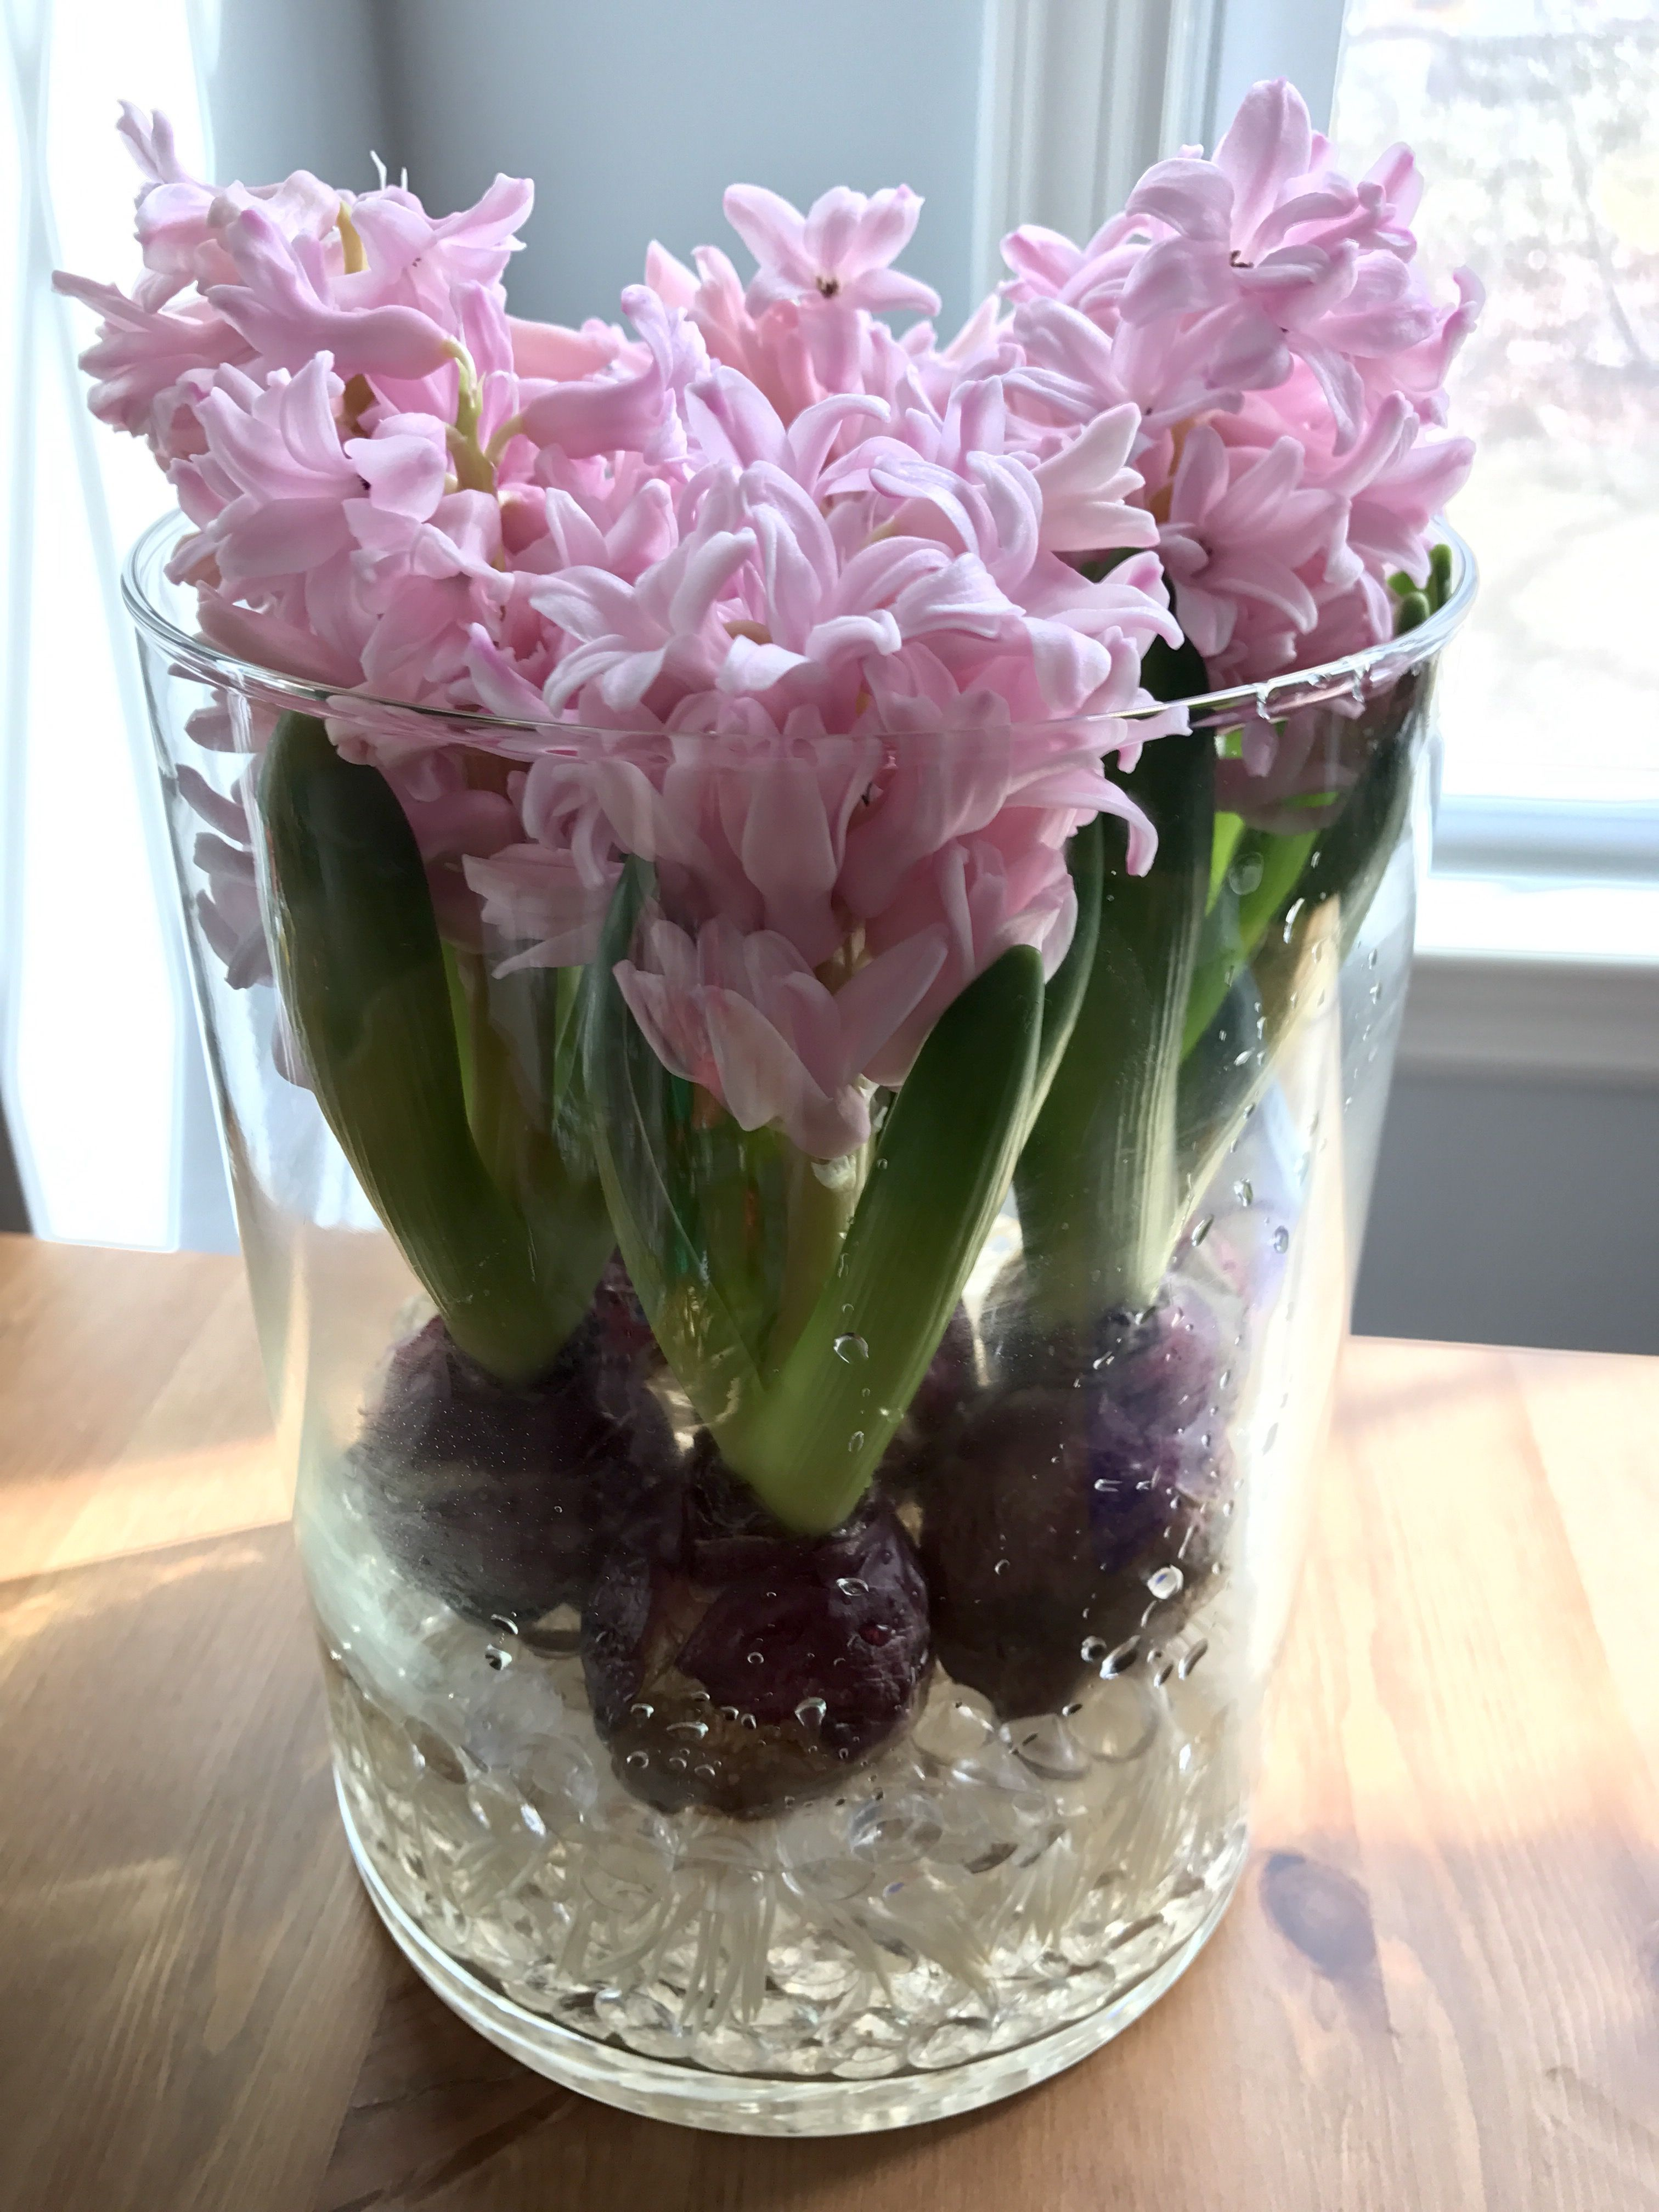 Grow hyacinth with just water put rocks or decorative rocks on grow hyacinth with just water put rocks or decorative rocks on bottom of large glass vase arrange bulbs and add water to bottom of bulbs reviewsmspy